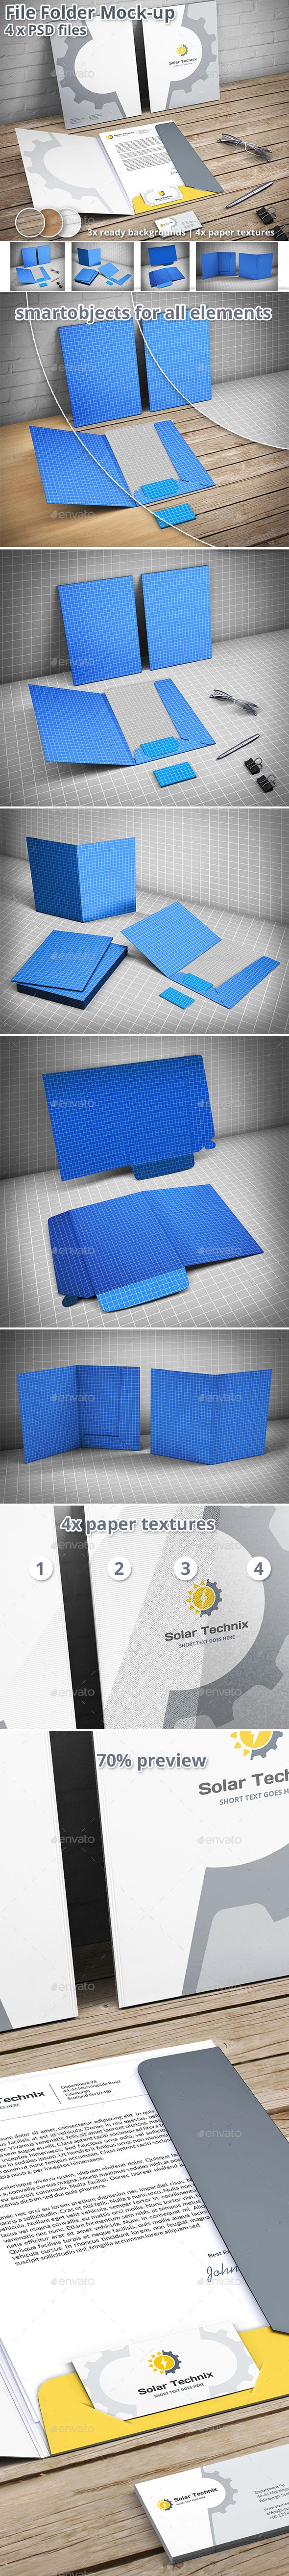 Document Folder Mockup - File Folder - Print #Product #Mock-Ups Download here: https://graphicriver.net/item/document-folder-mockup-file-folder/19529969?ref=alena994